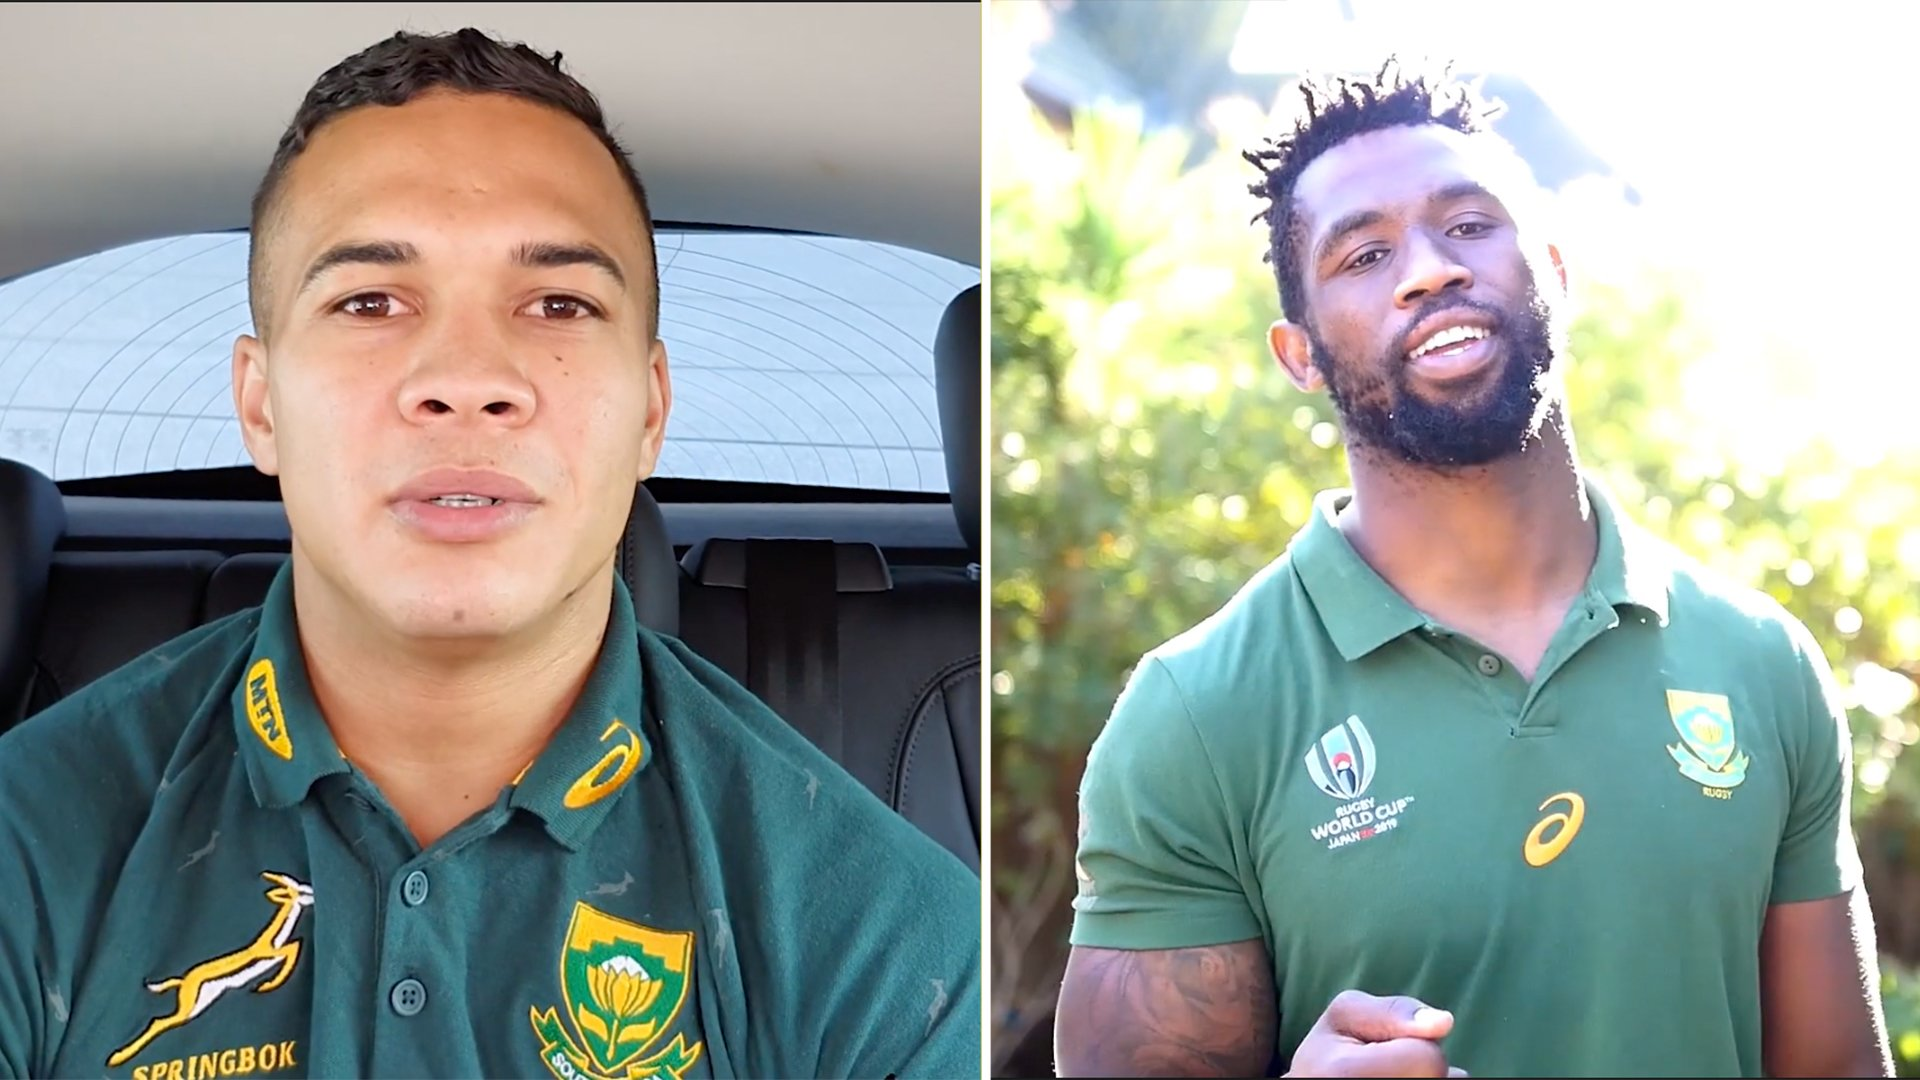 Springboks hilariously burn England as they announced brilliant initiative to help South Africa